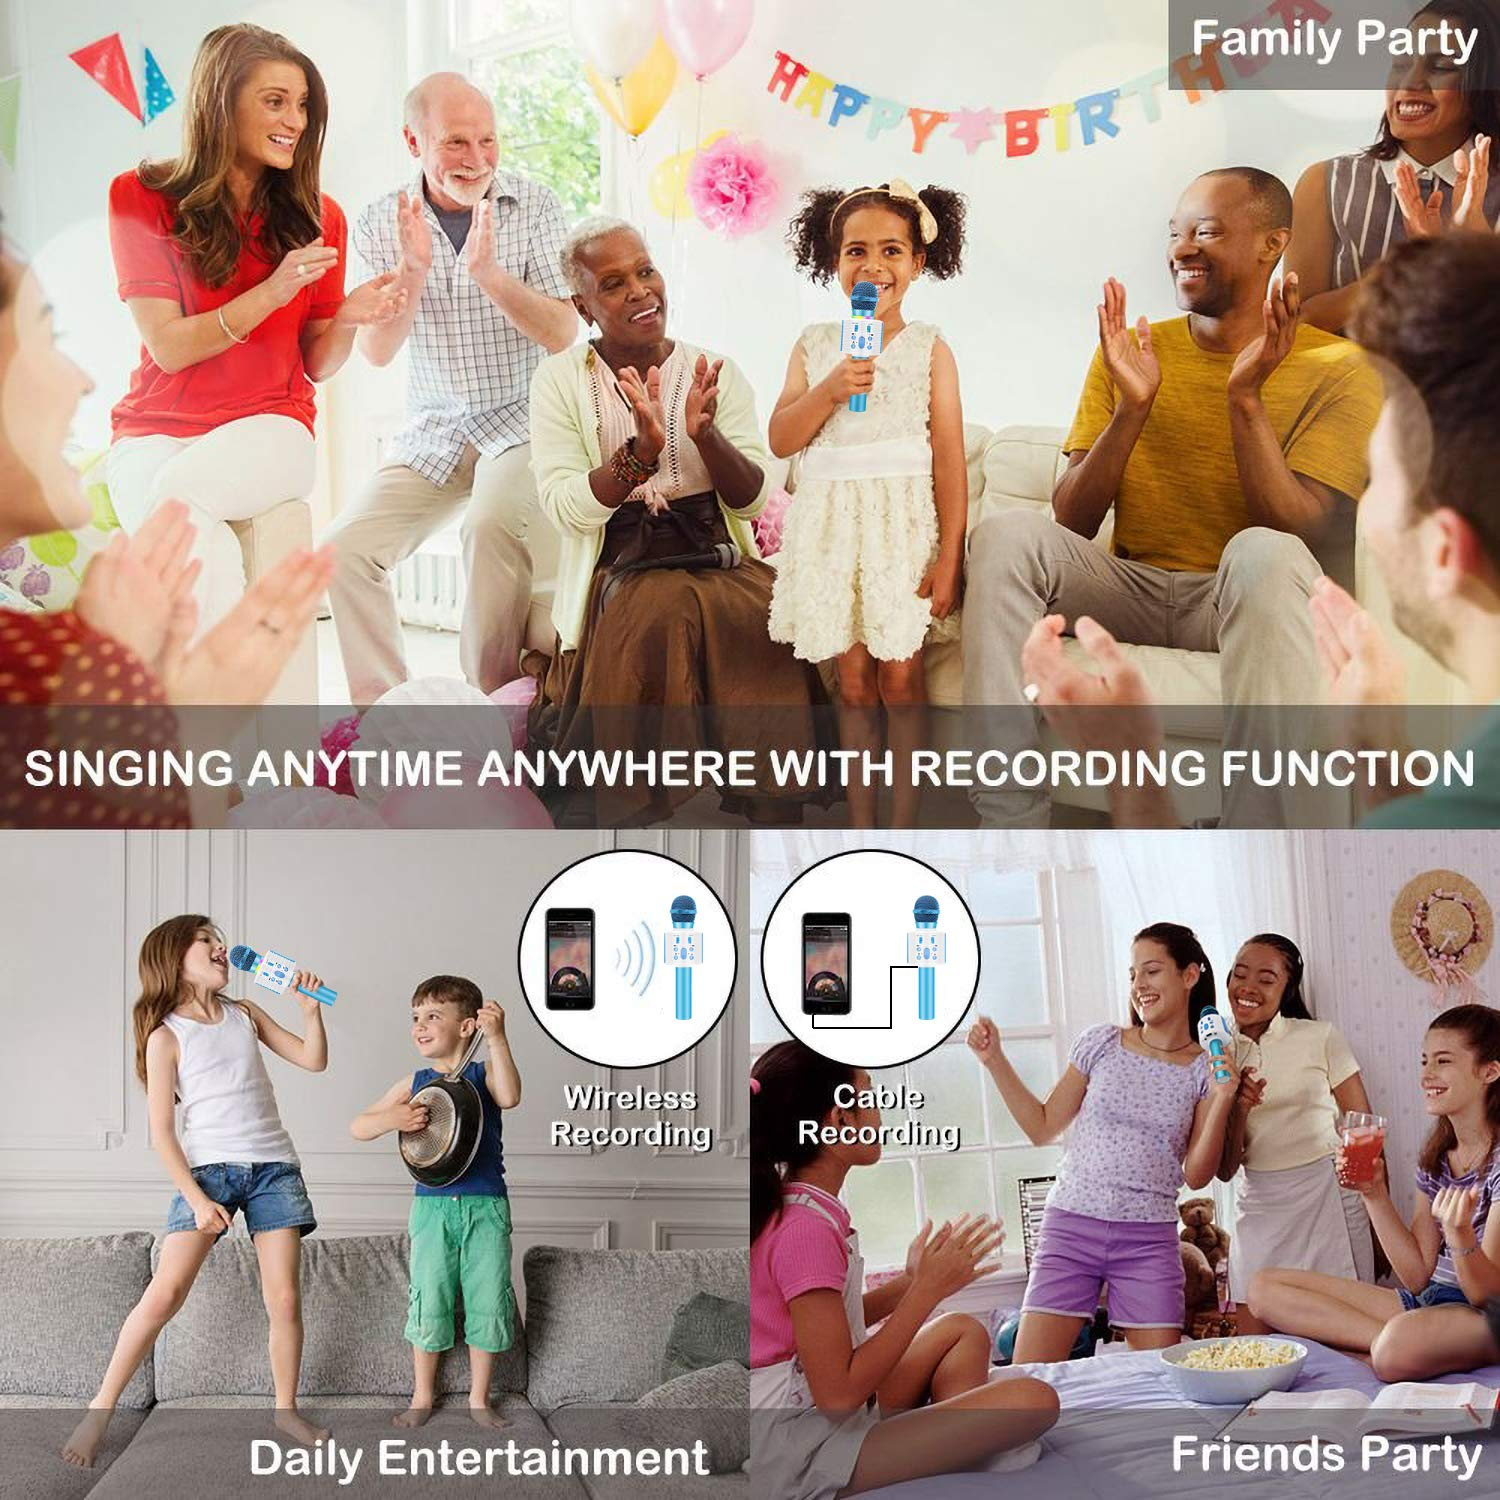 Wireless Karaoke Microphone with Speaker Pro, 3-in-1 Portable Handheld Karaoke Mic Home Party Birthday Gifts for Kids Speaker Machine for Android/ PC /phone(Blue) by weird tails (Image #7)